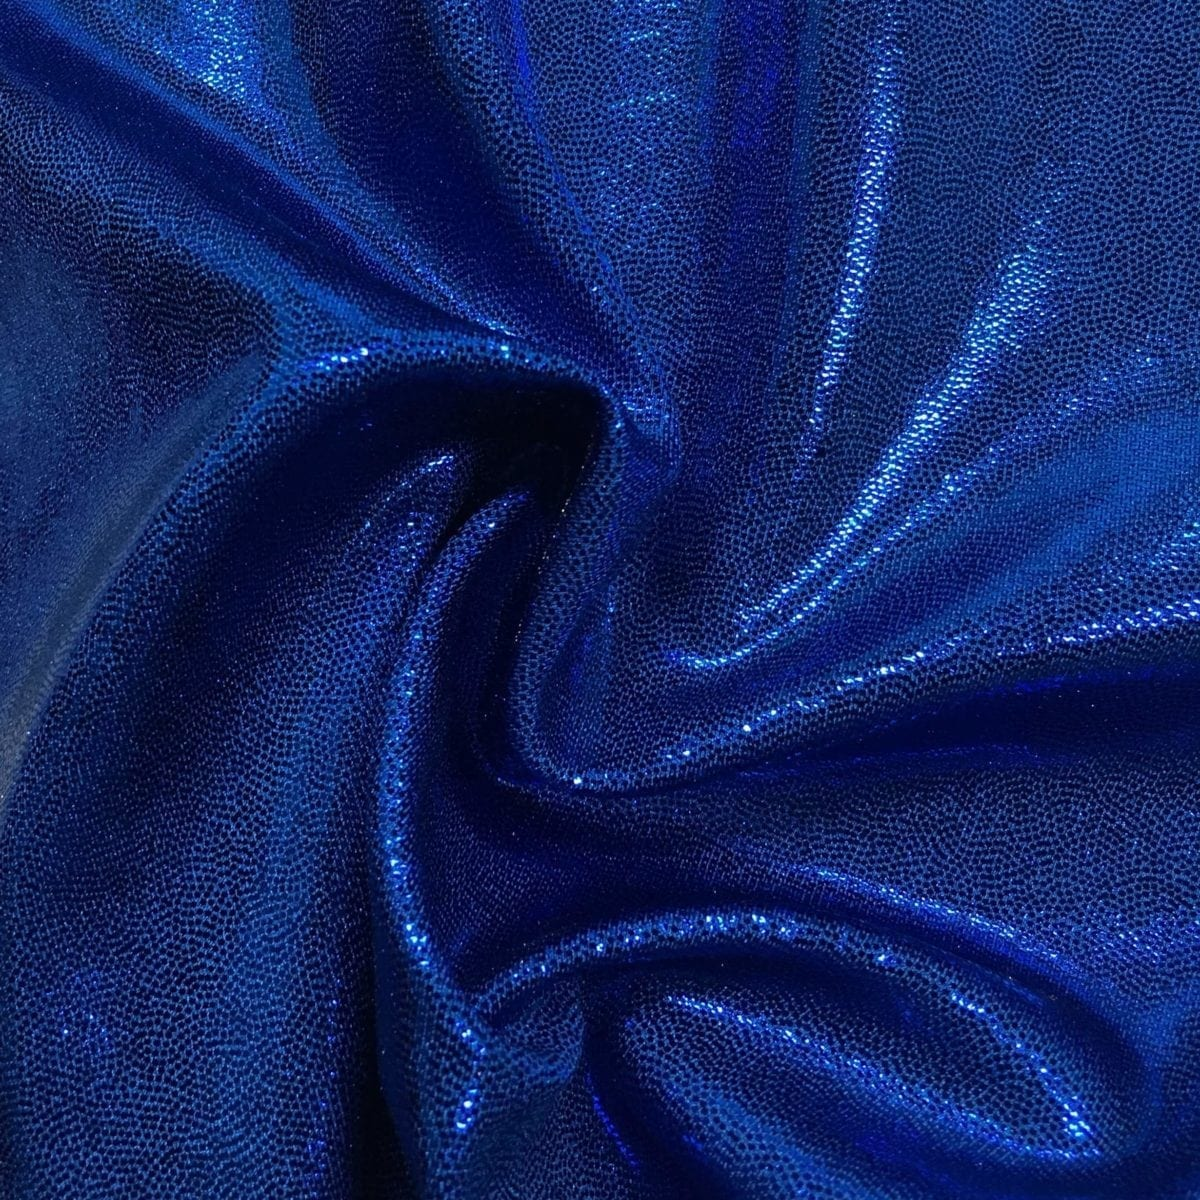 Lapis Lazuli Jewels Spandex, flat foil fabric, blue fabric, shiny blue fabric, dance fabric, gymnastics fabric